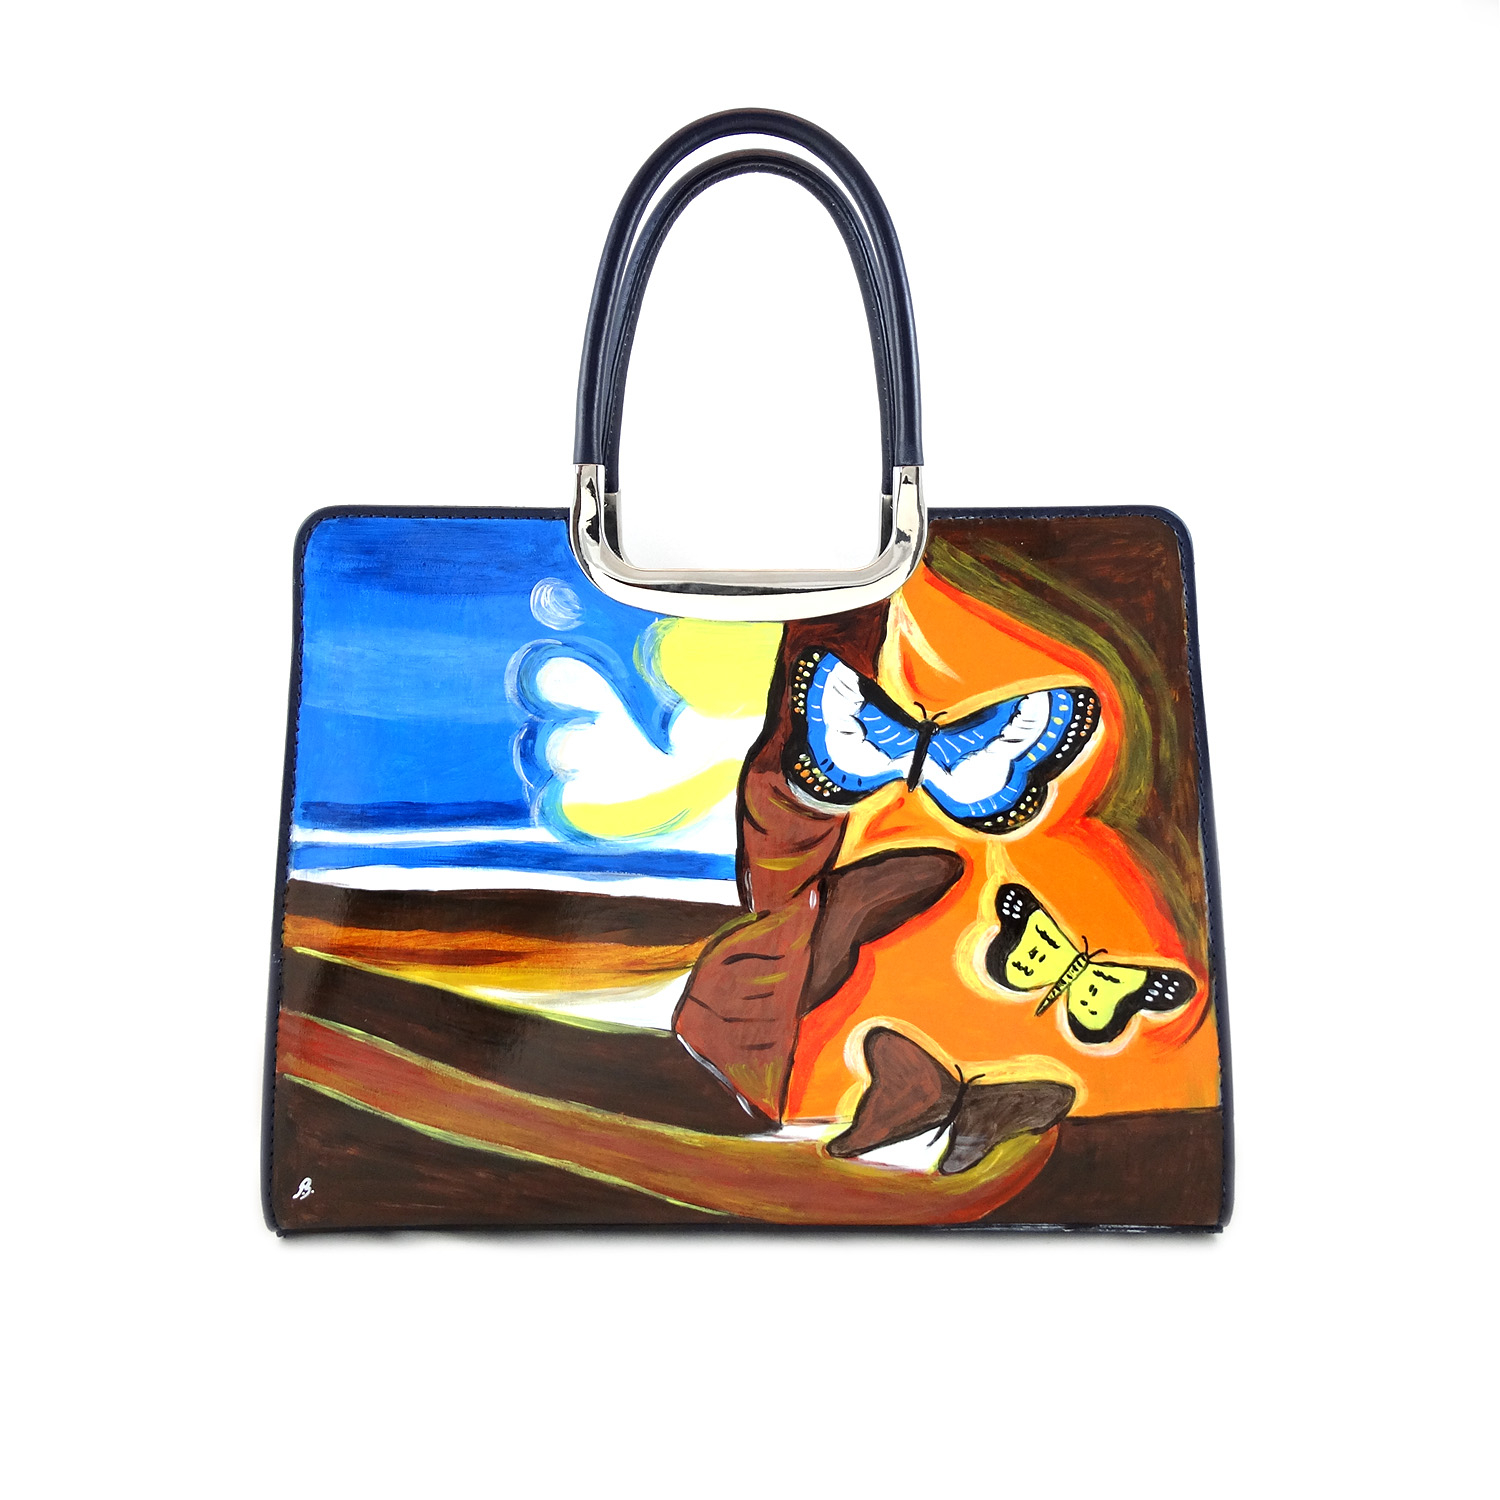 Handpainted bag - Landscape with butterflies by Dali